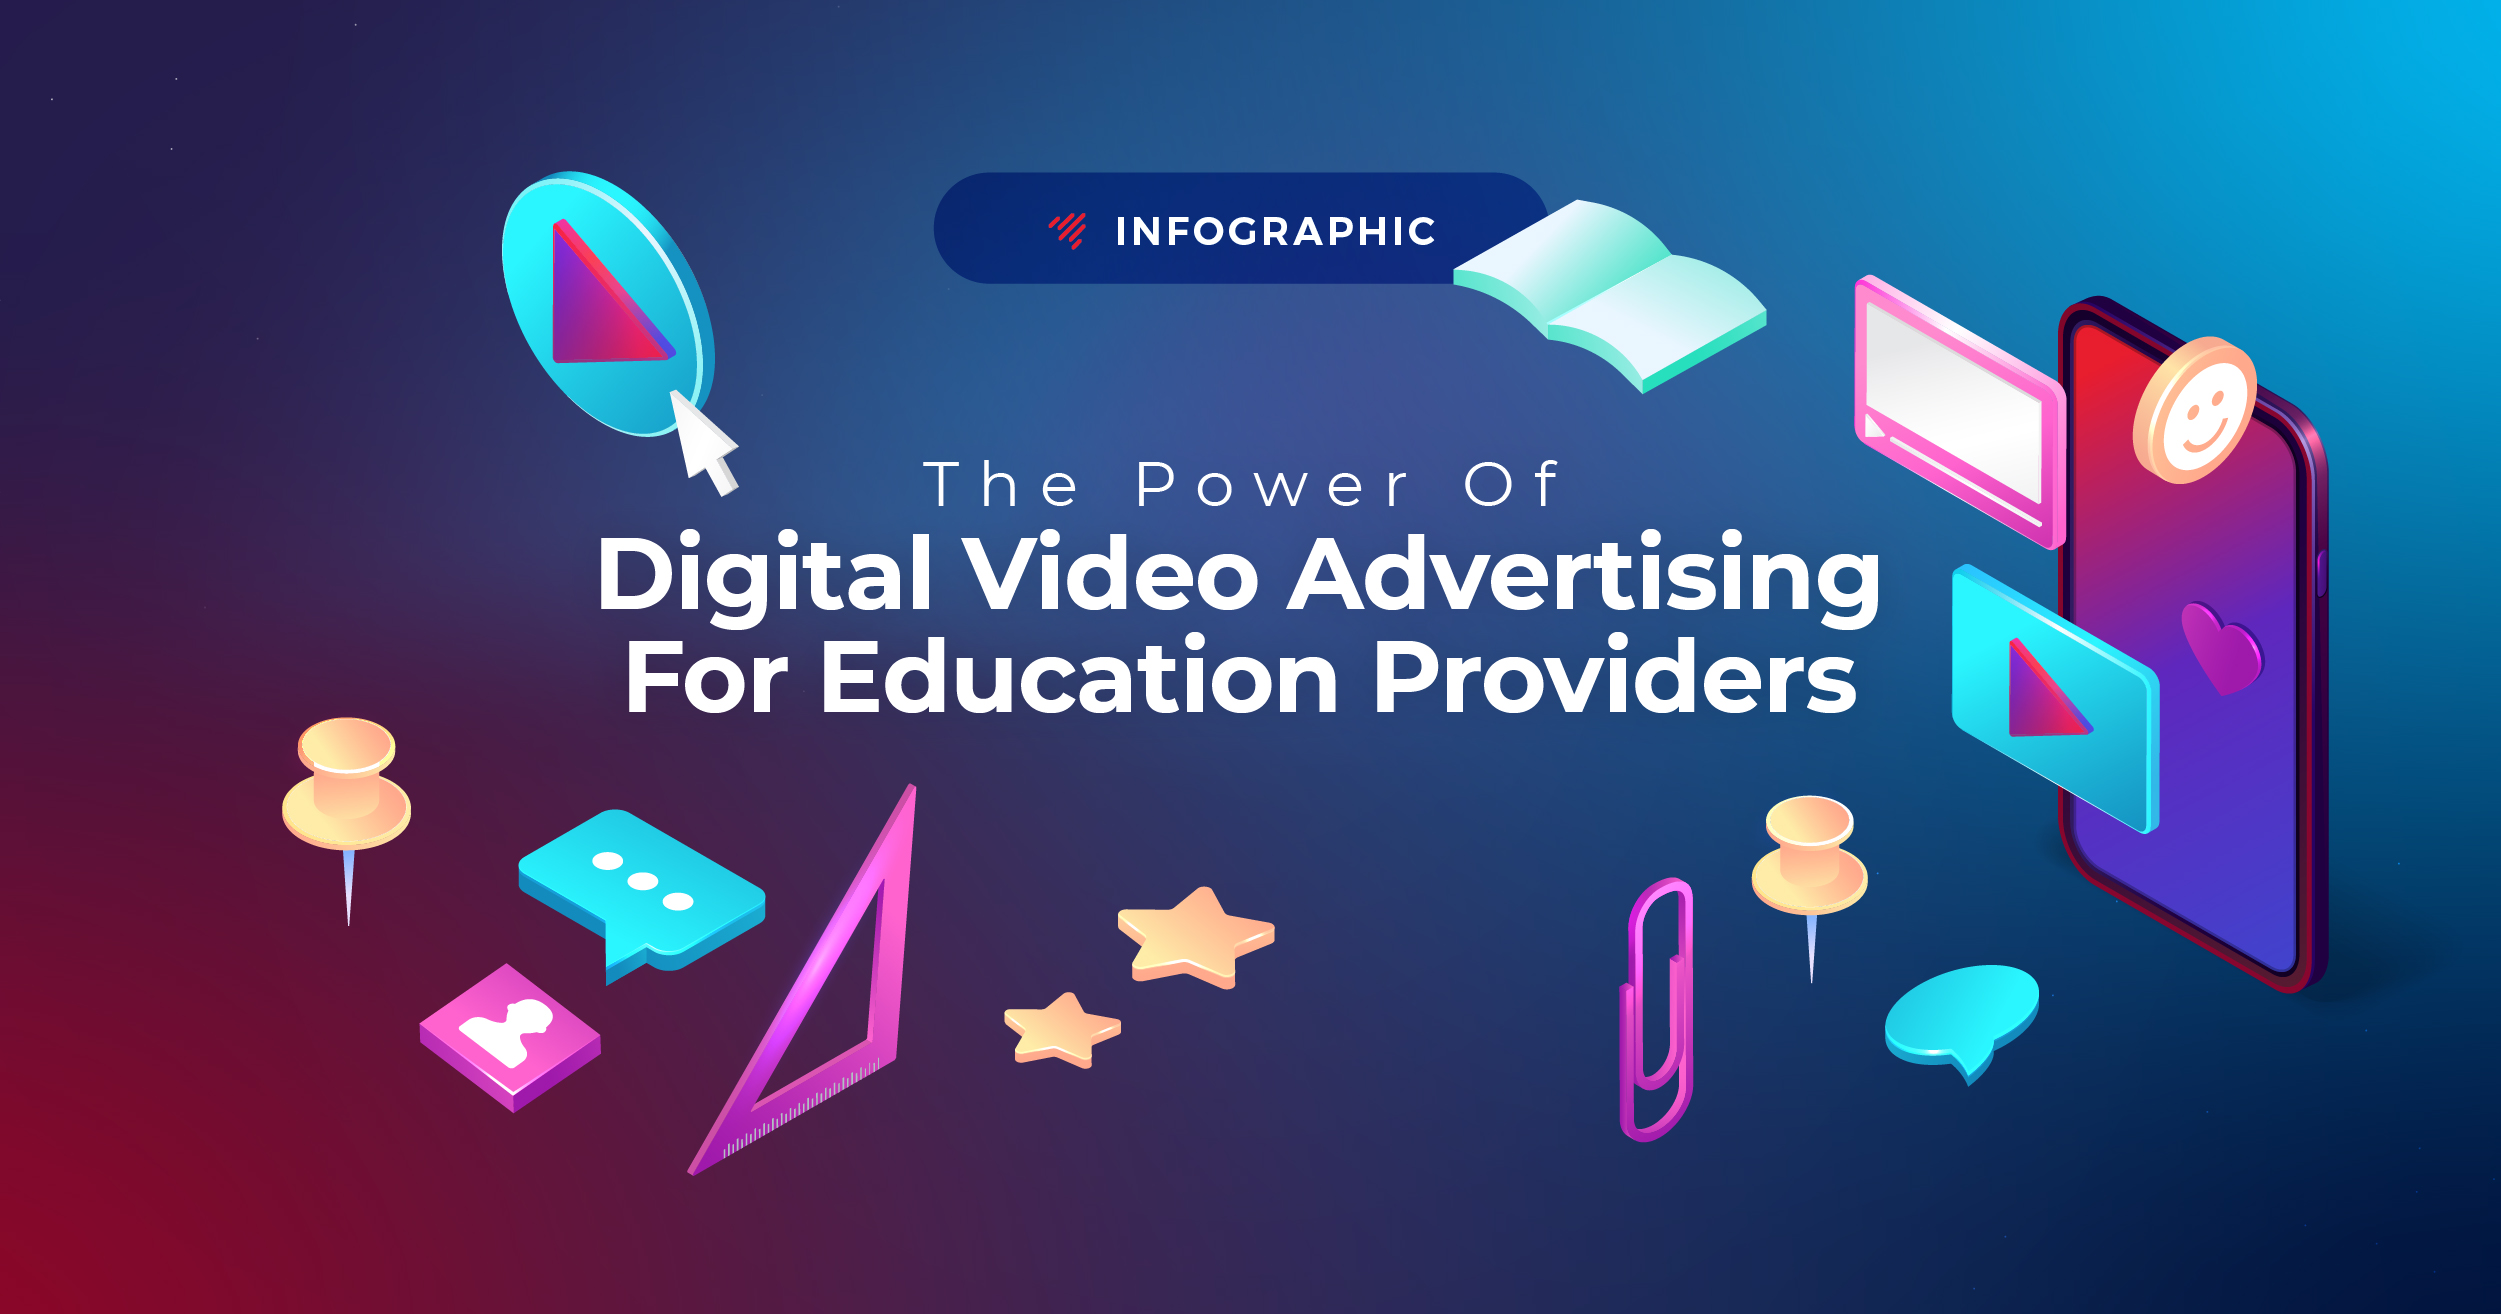 The Power Of Digital Video Advertising For Education Providers